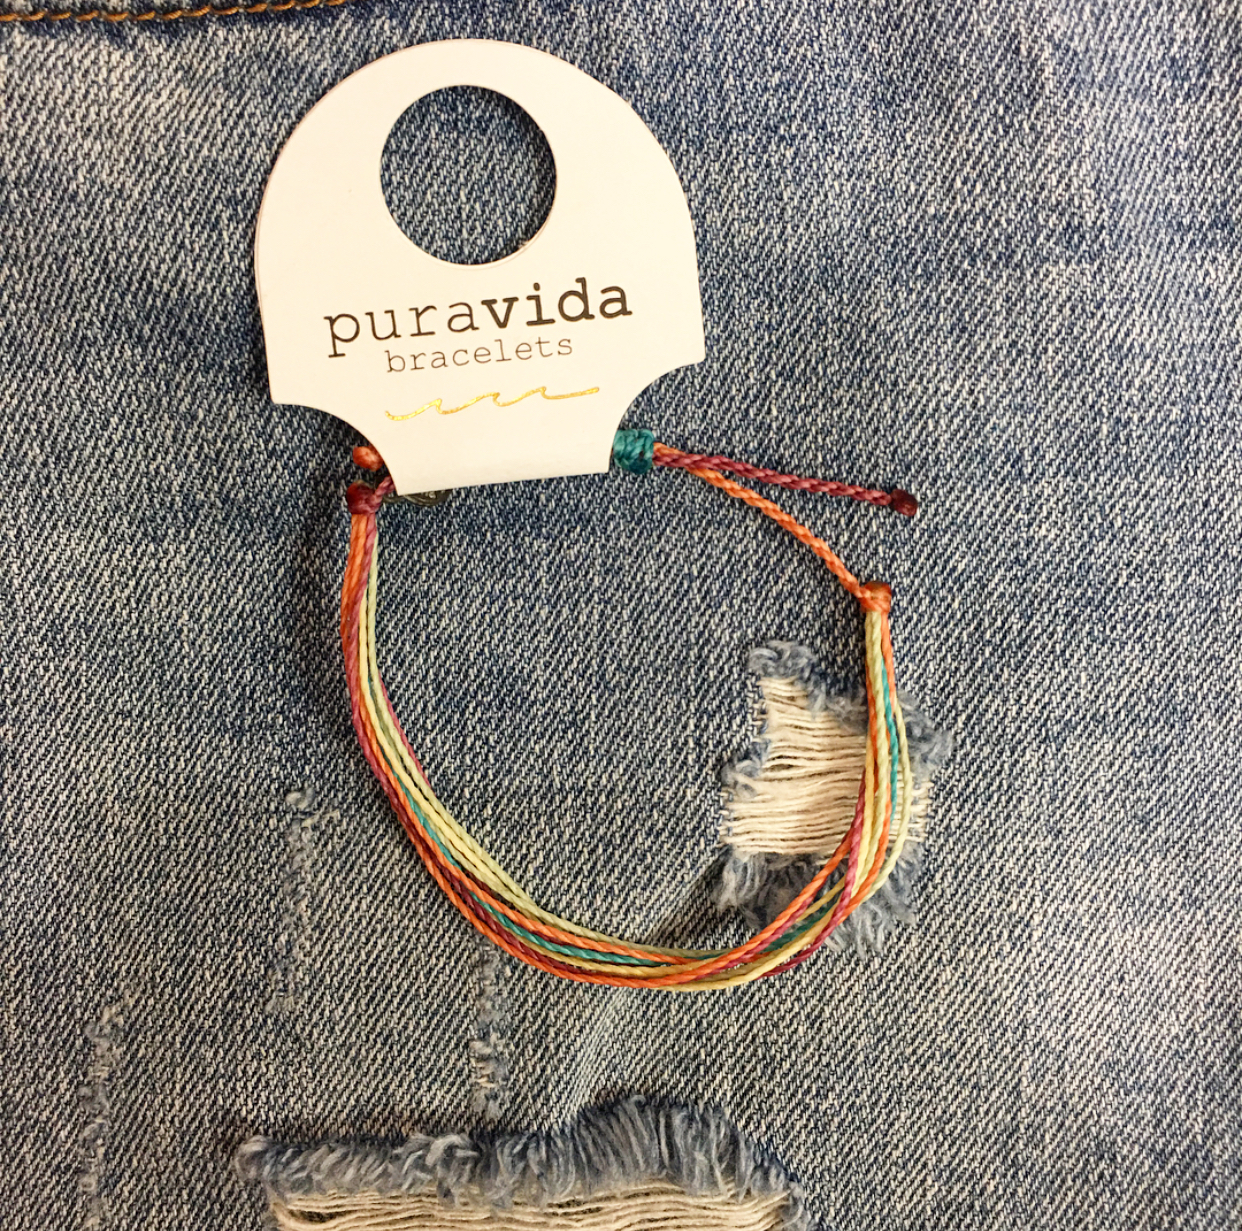 "#5 - From bold and bright bracelets, to simple and dainty rings, there is no doubt that Pura Vida is the perfect jewelry pick for Spring Break! ""Pura Vida"" translates to ""pure life"" in Spanish; a Costa Rican philosophy that encourages slowing things down and celebrating good fortune. Pura Vida embodies a laid back vibe that is perfect for spring break!Have a safe and fun vacation wherever your travels take you!XOXO Bella Mia"